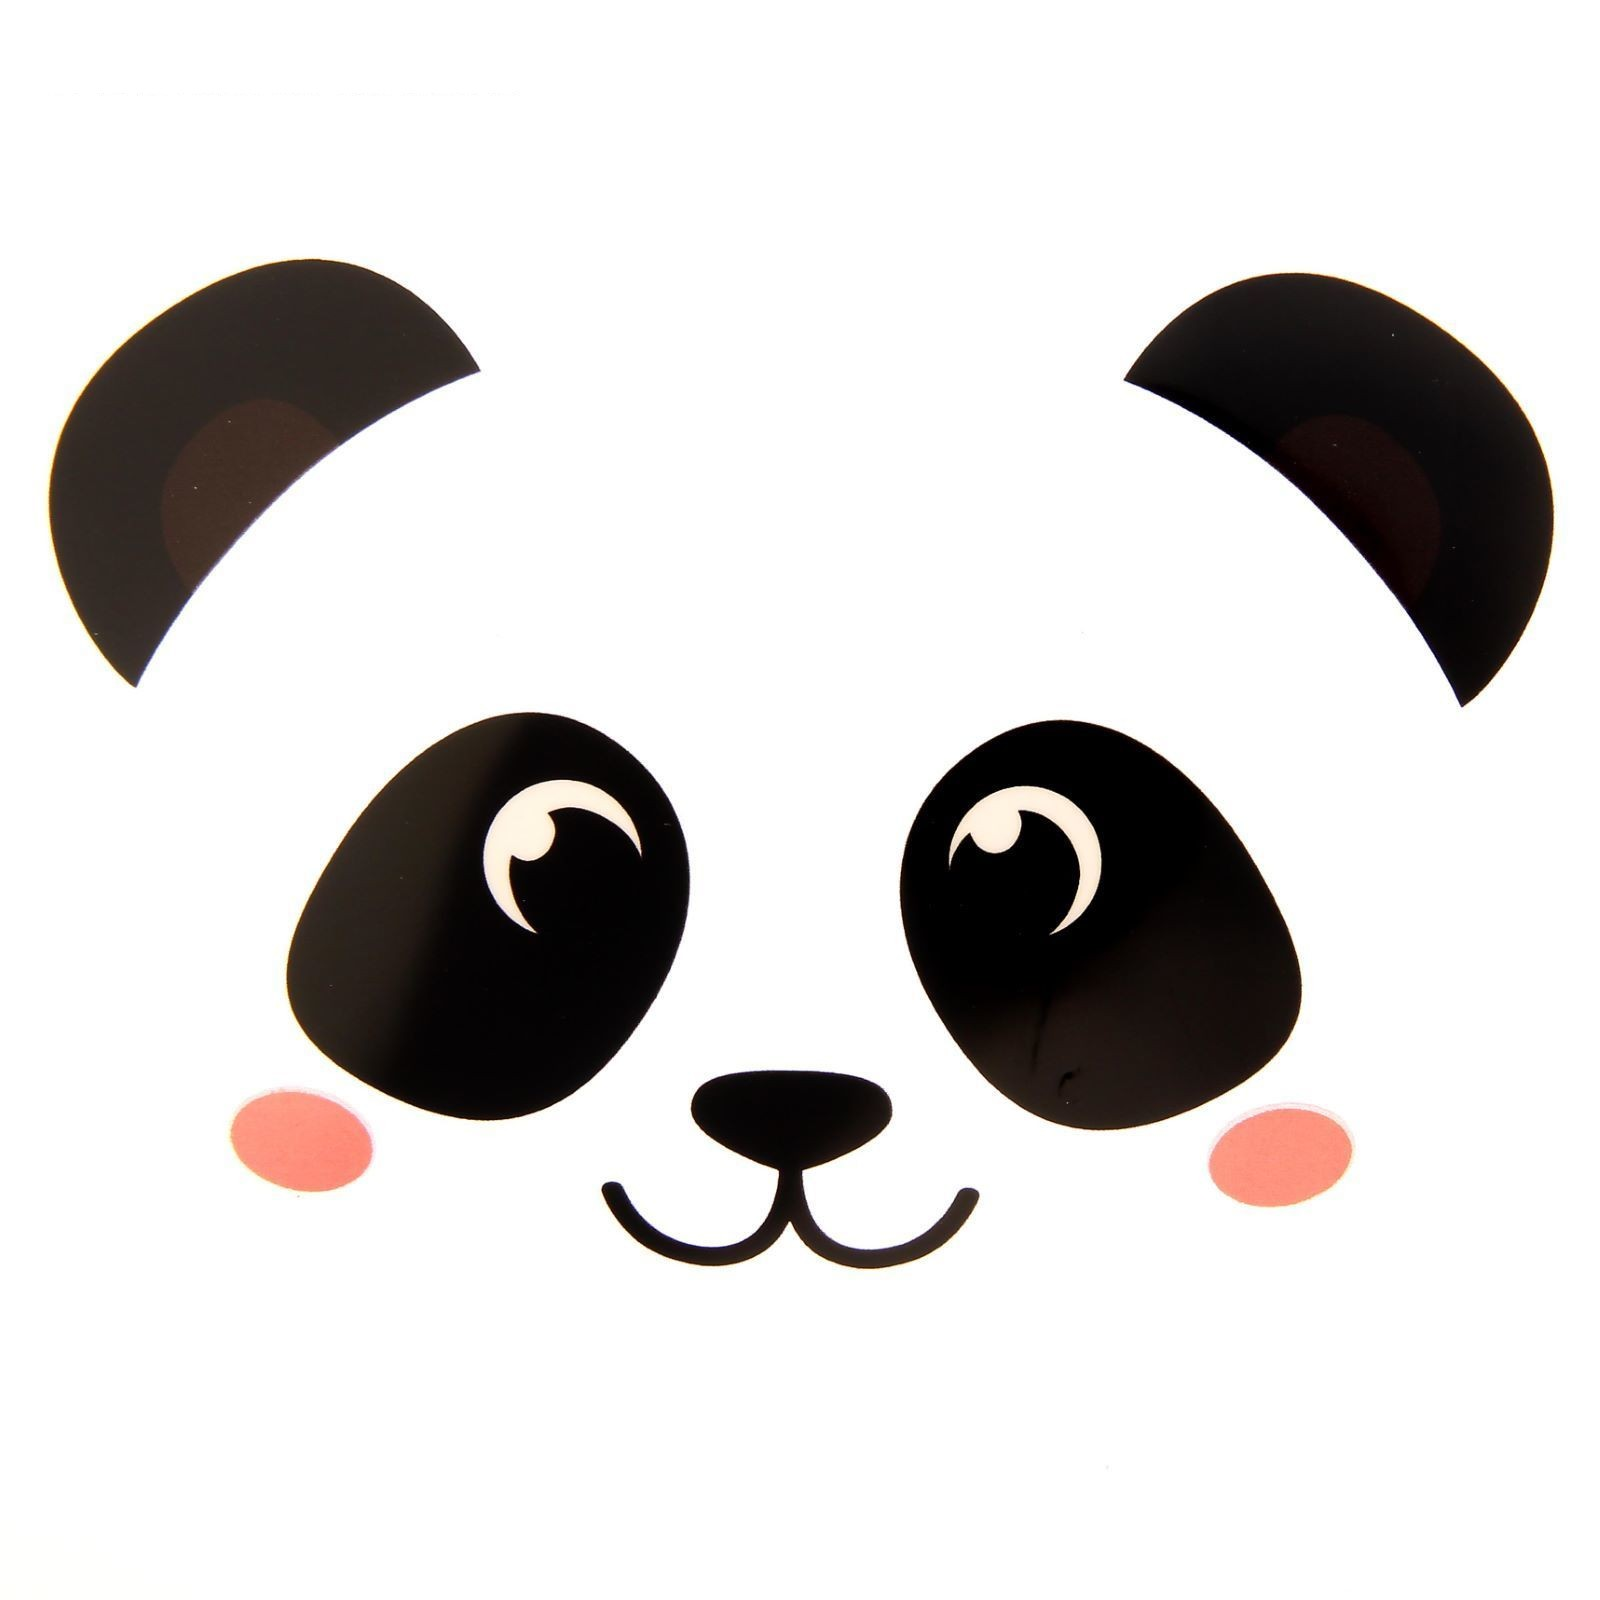 Panda face drawing for kids